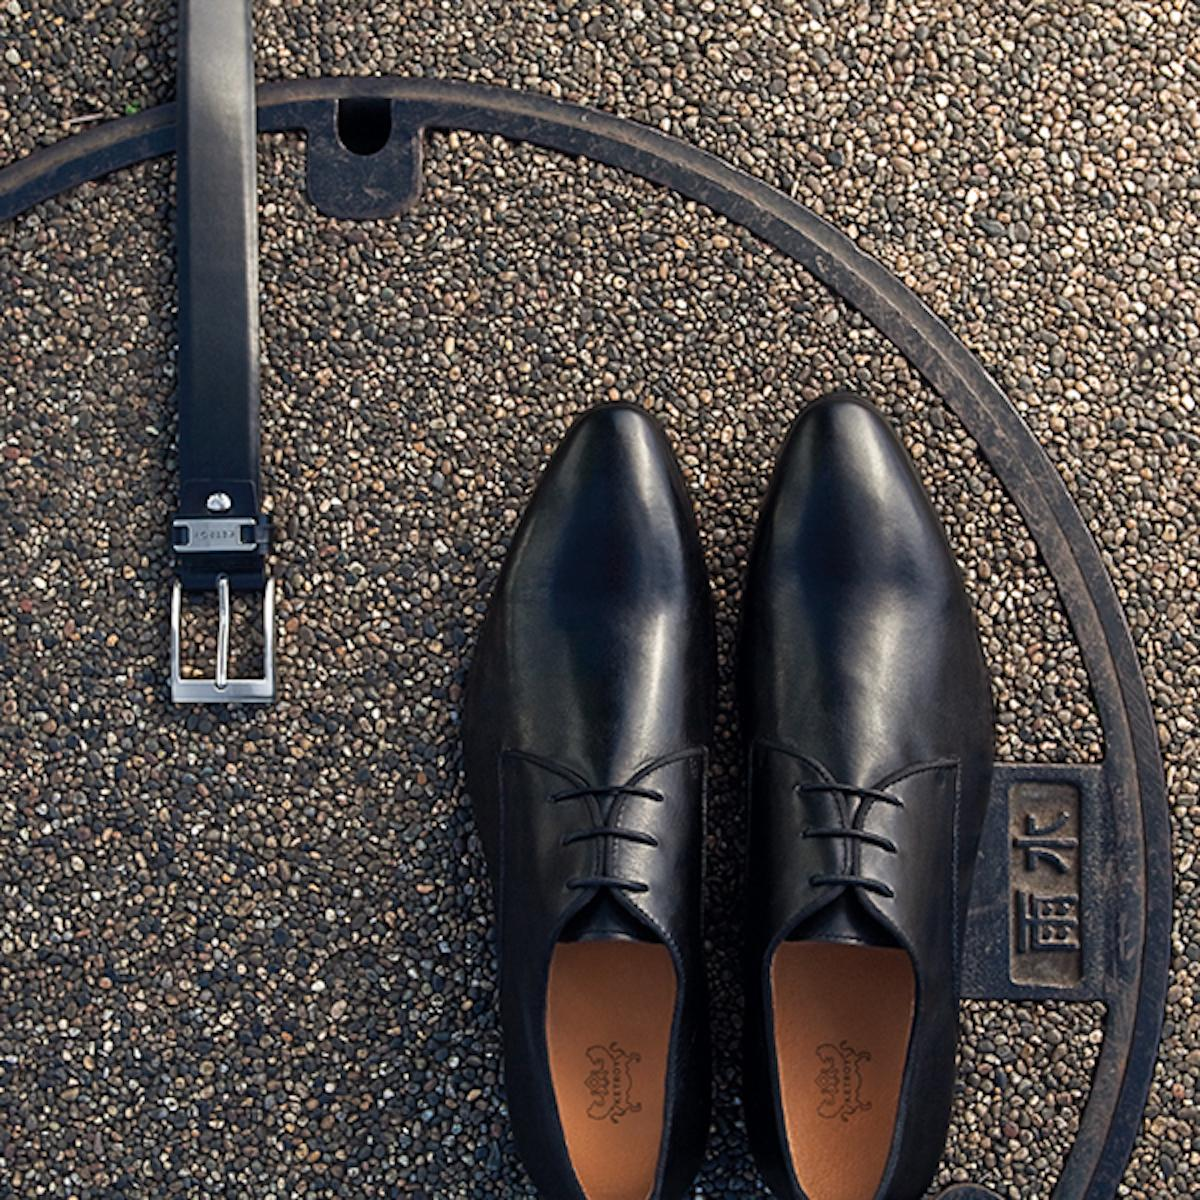 Combination of black classic shoes and black belt